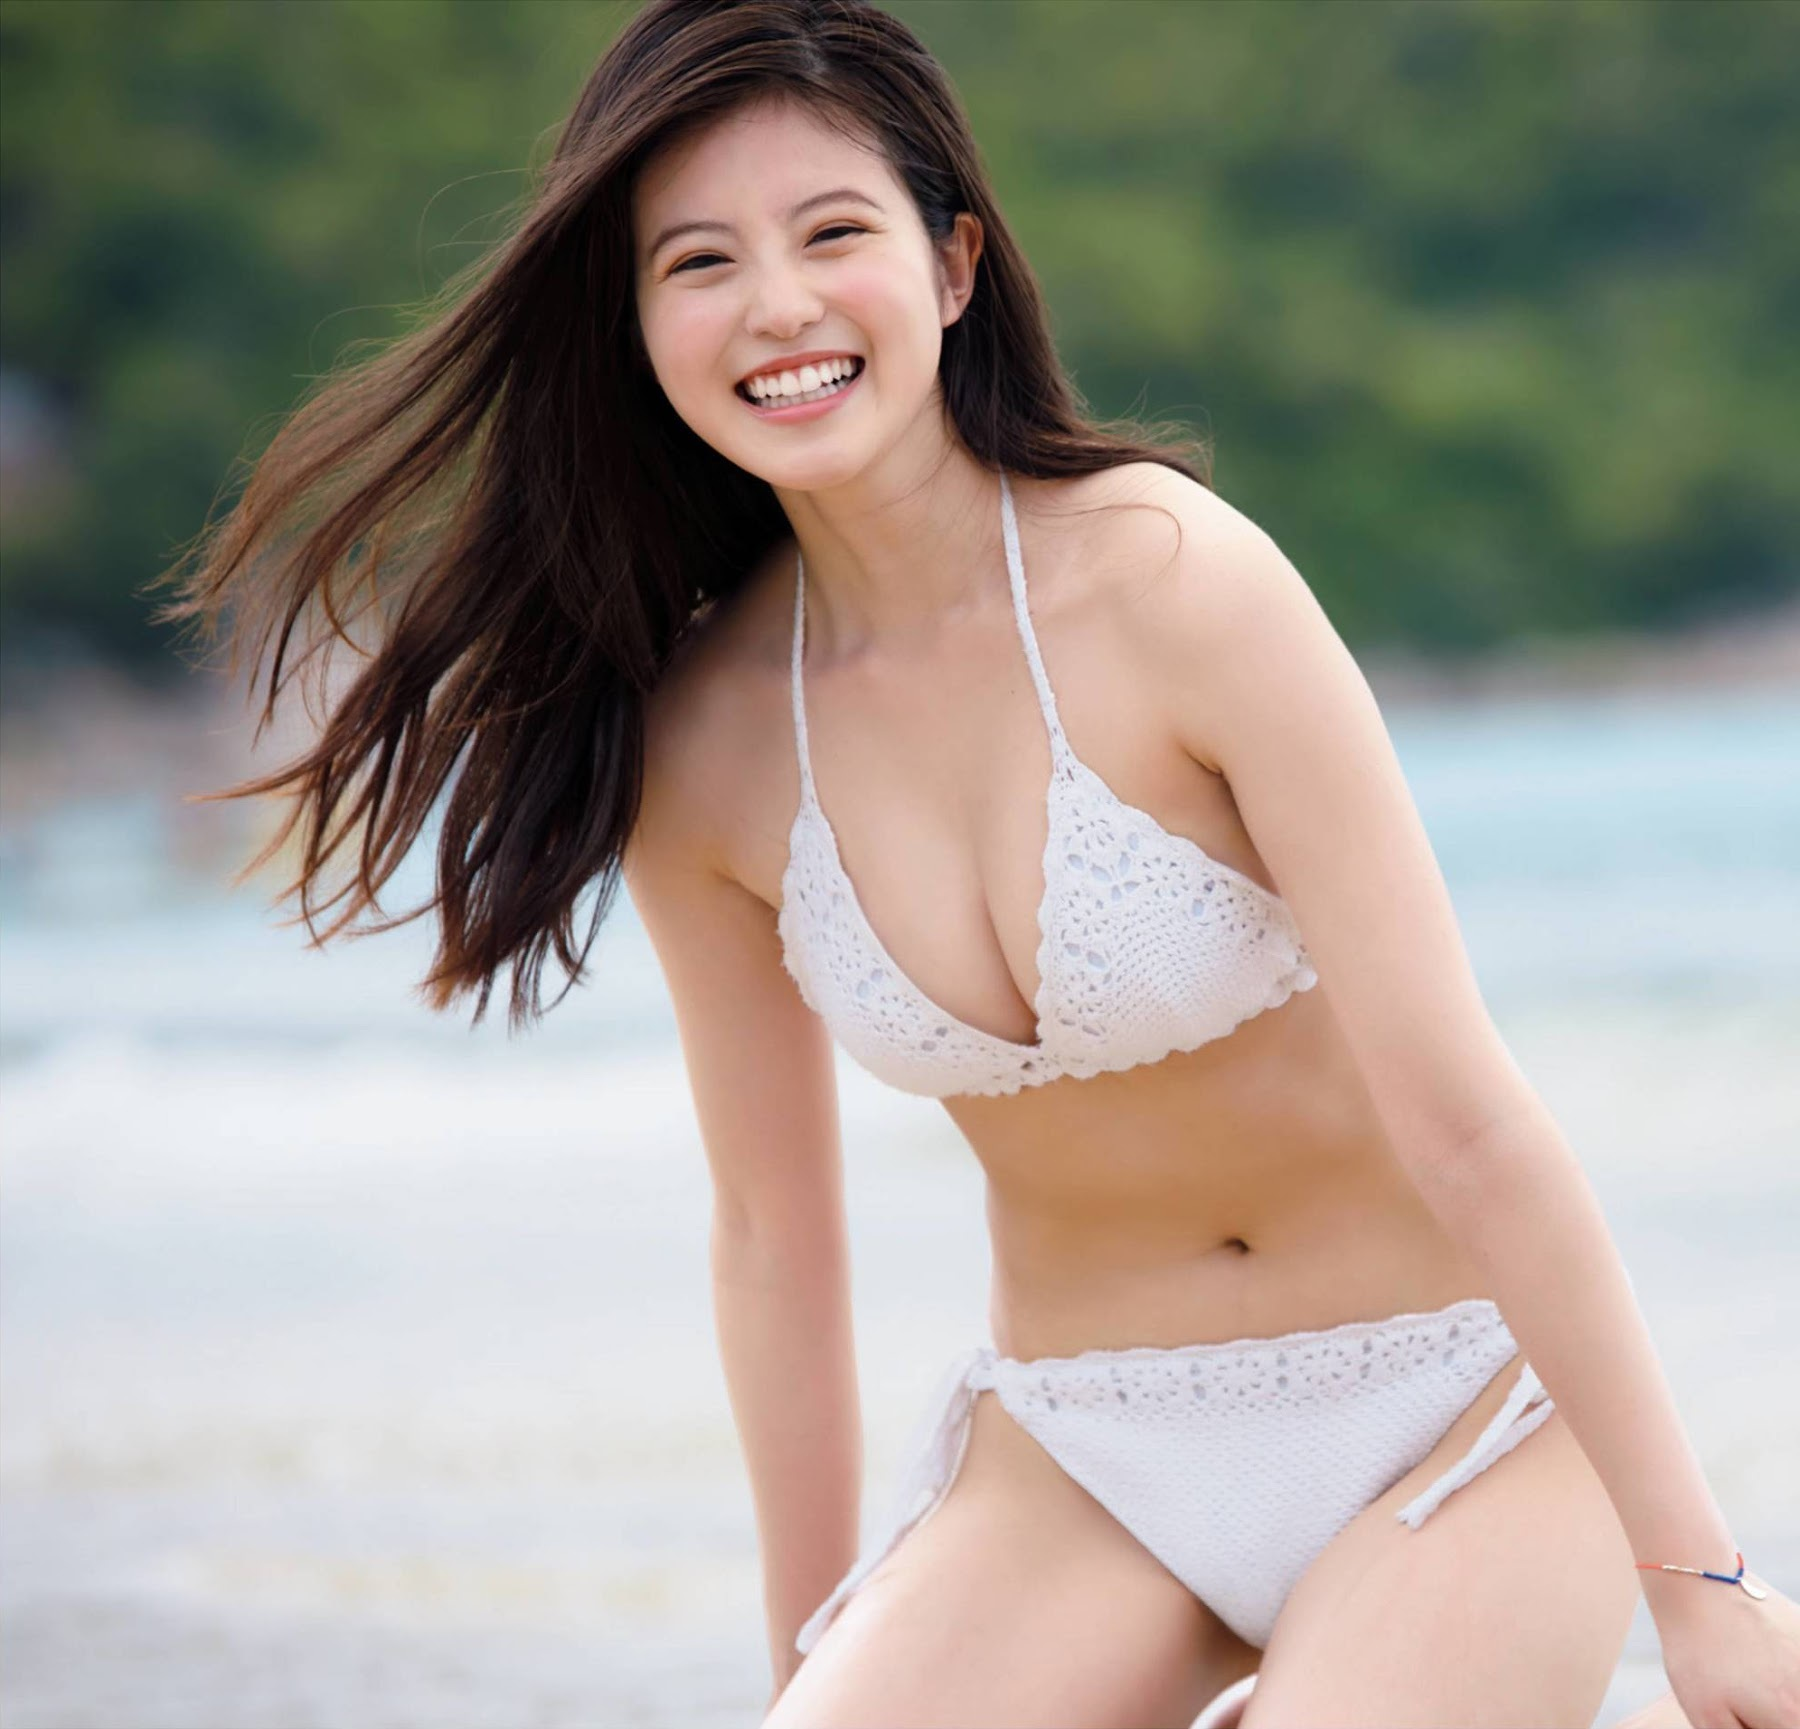 This is really the last time well be seeing her Final Swimsuit Mio Imada 2020007